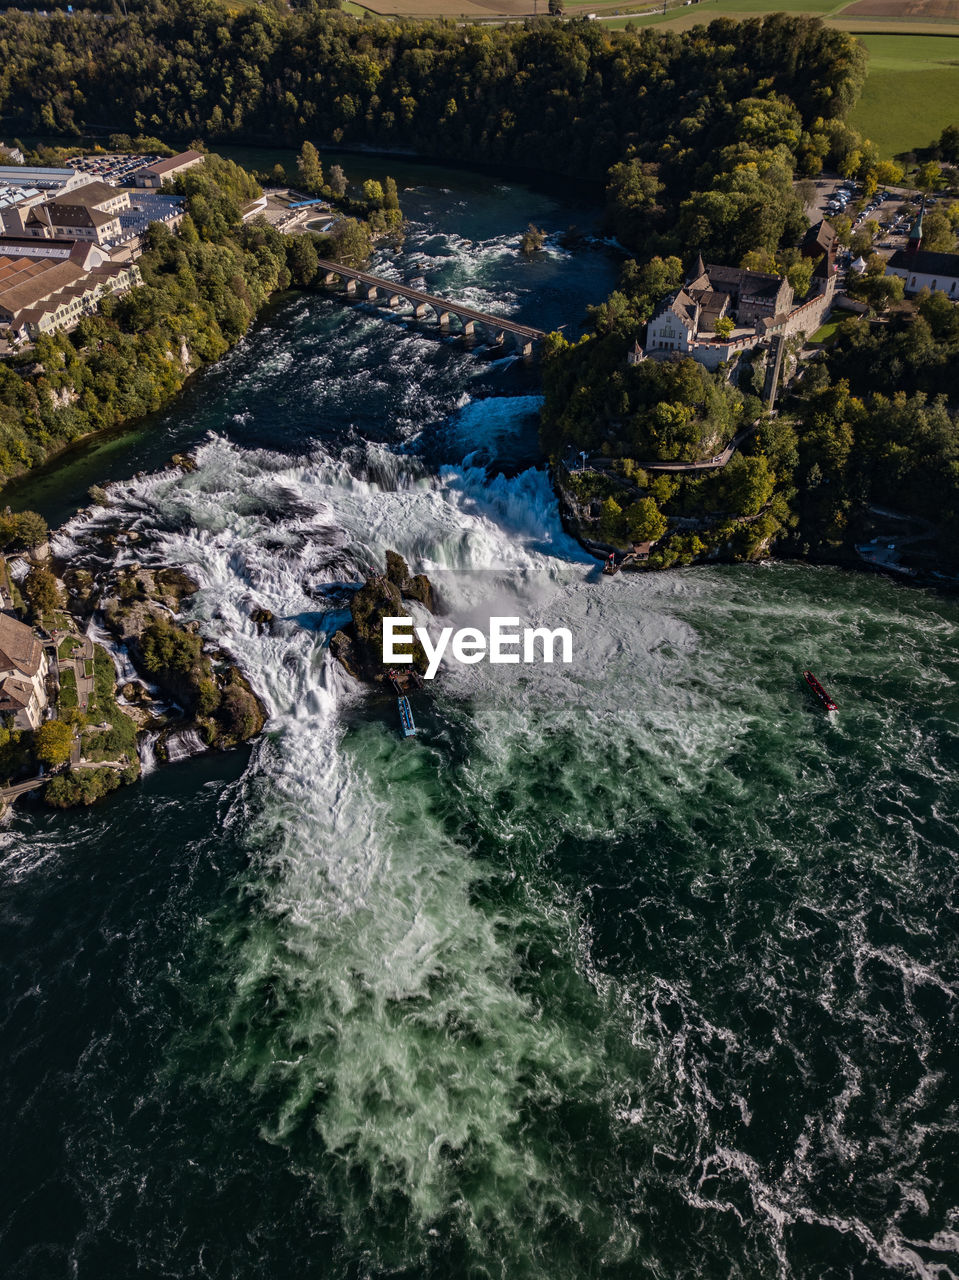 water, nature, beauty in nature, river, day, scenics - nature, rock, high angle view, motion, no people, waterfront, rock - object, solid, sport, flowing water, outdoors, plant, tree, flowing